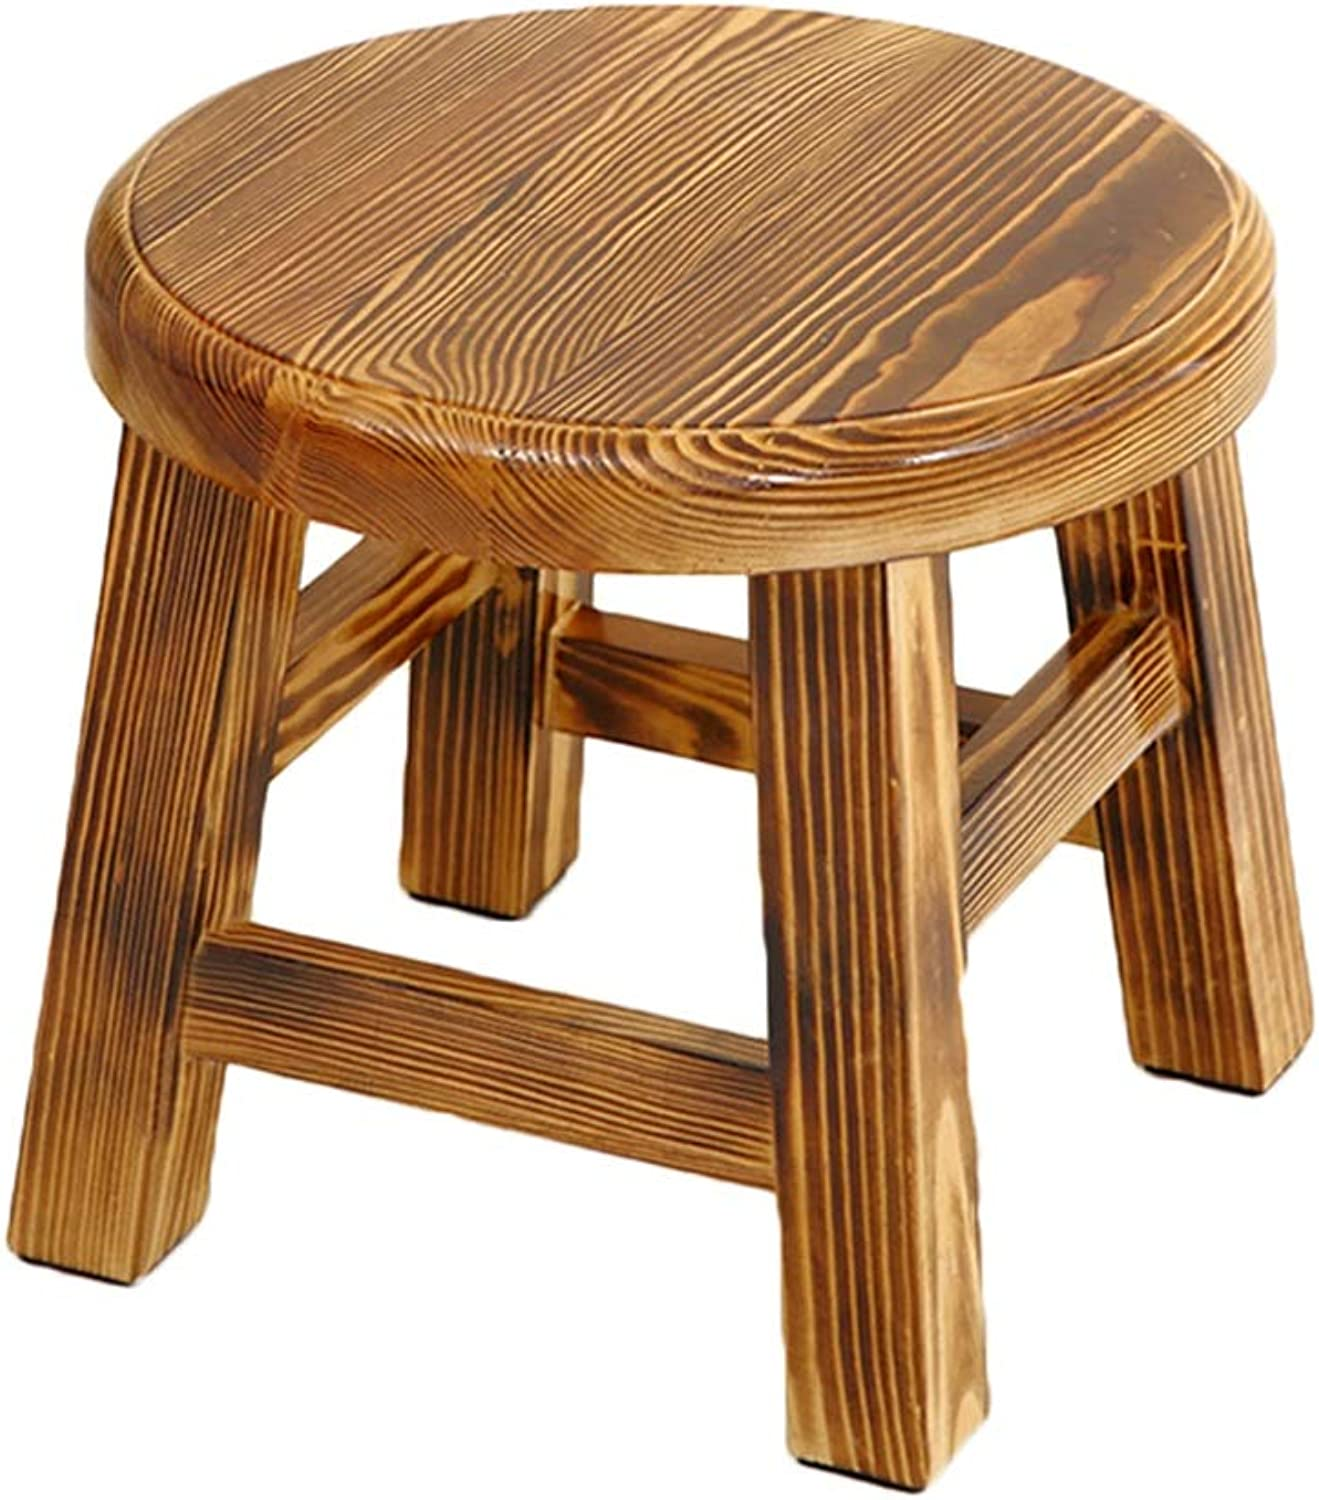 Stool Change shoes Stool Pine Household Solid Wood Small Stool Fashion Creative Simple Modern Adult Coffee Table Stool High 26cm ZHAOSHUNLI (color   Charcoal Burnt)